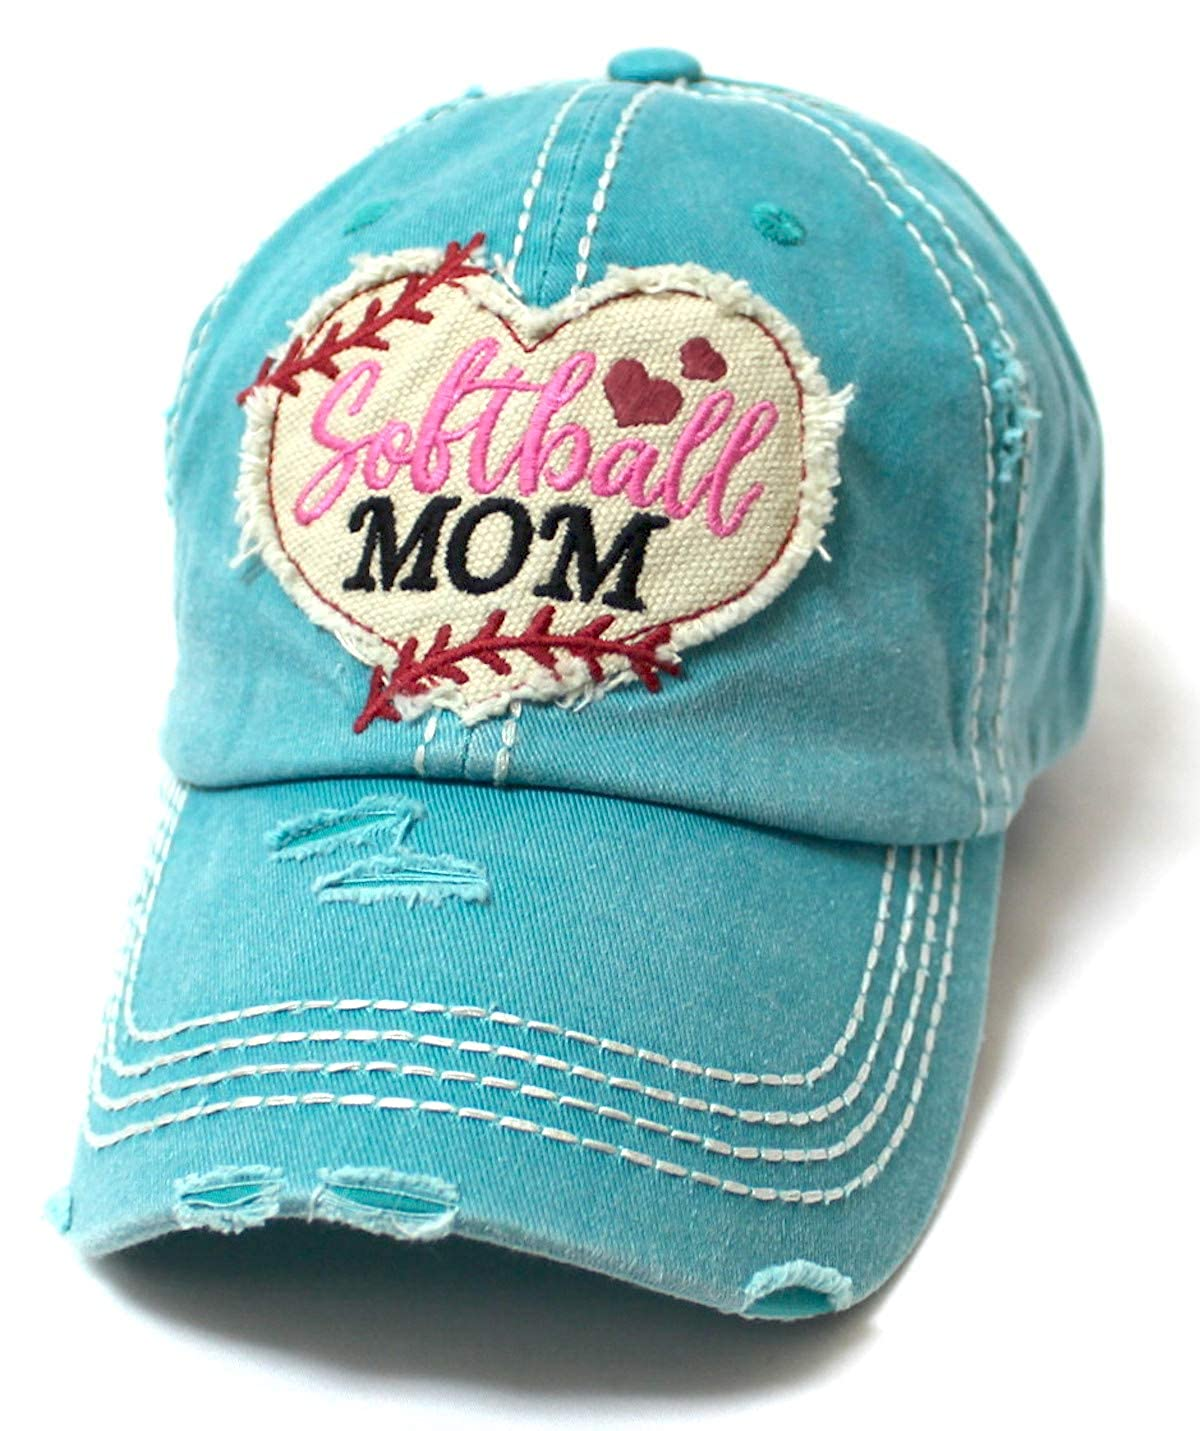 df82eb6a Women's Softball Mom Baseball Cap Heart Softball Patch Embroidery,  Turquoise at Amazon Women's Clothing store: